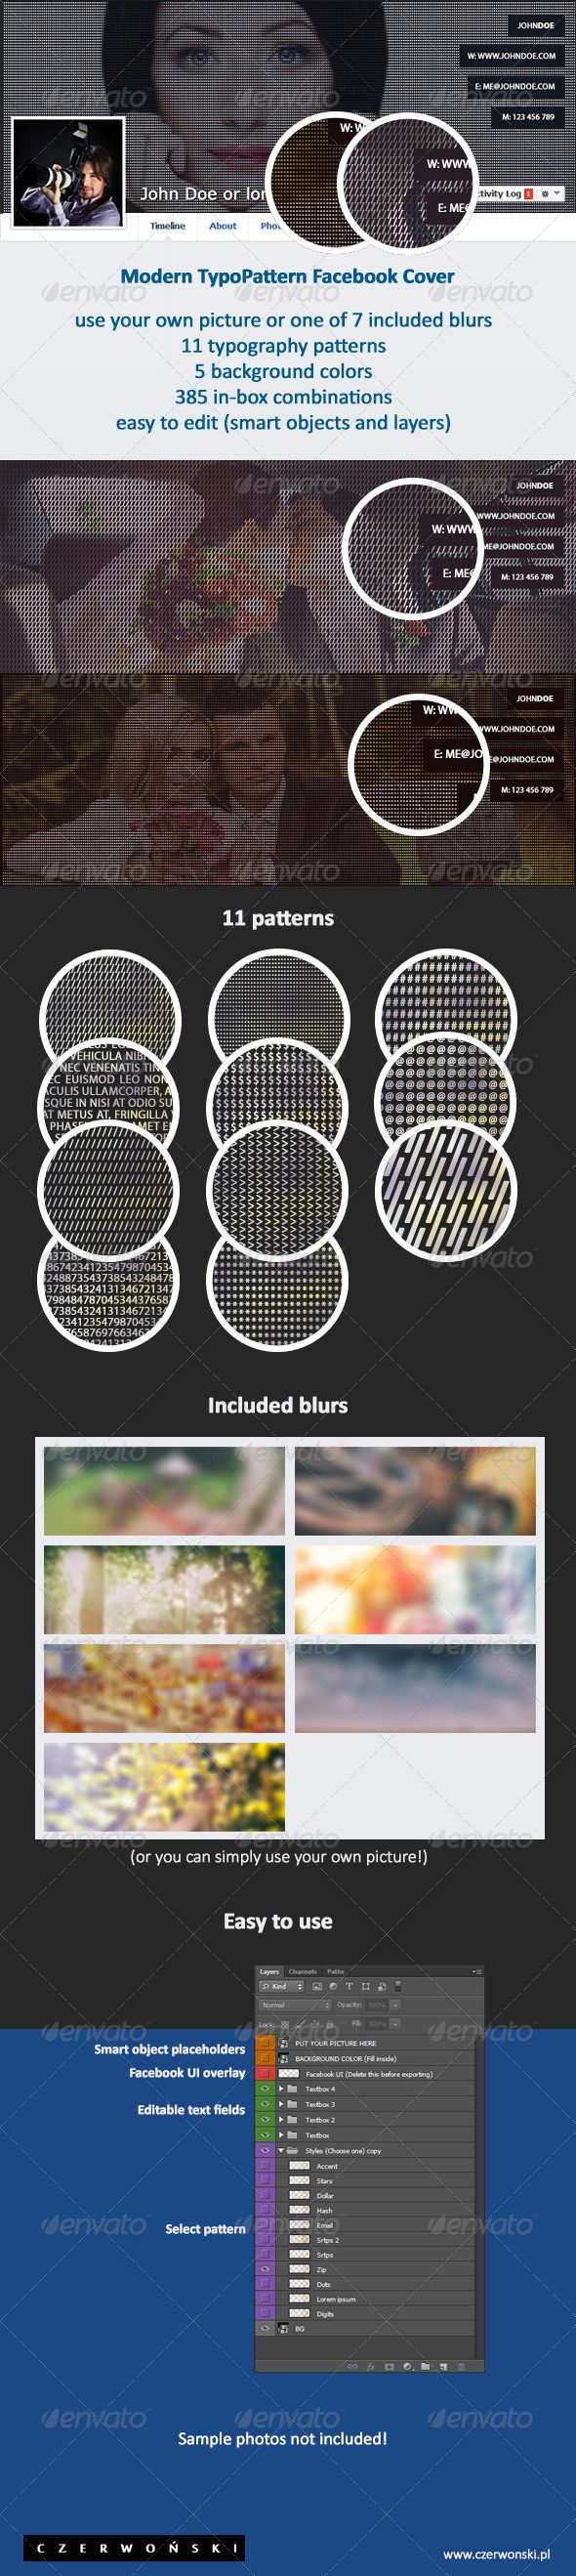 Modern TypoPattern Facebook Cover ...  Creative timeline cover, Facebook Timeline Cover, Facebook timeline, clean, creative, creative timeline, digital, facebook, facebook cover, facebook covers, facebook profile, flat, modern, photo, photos, profile cover, timeline cover